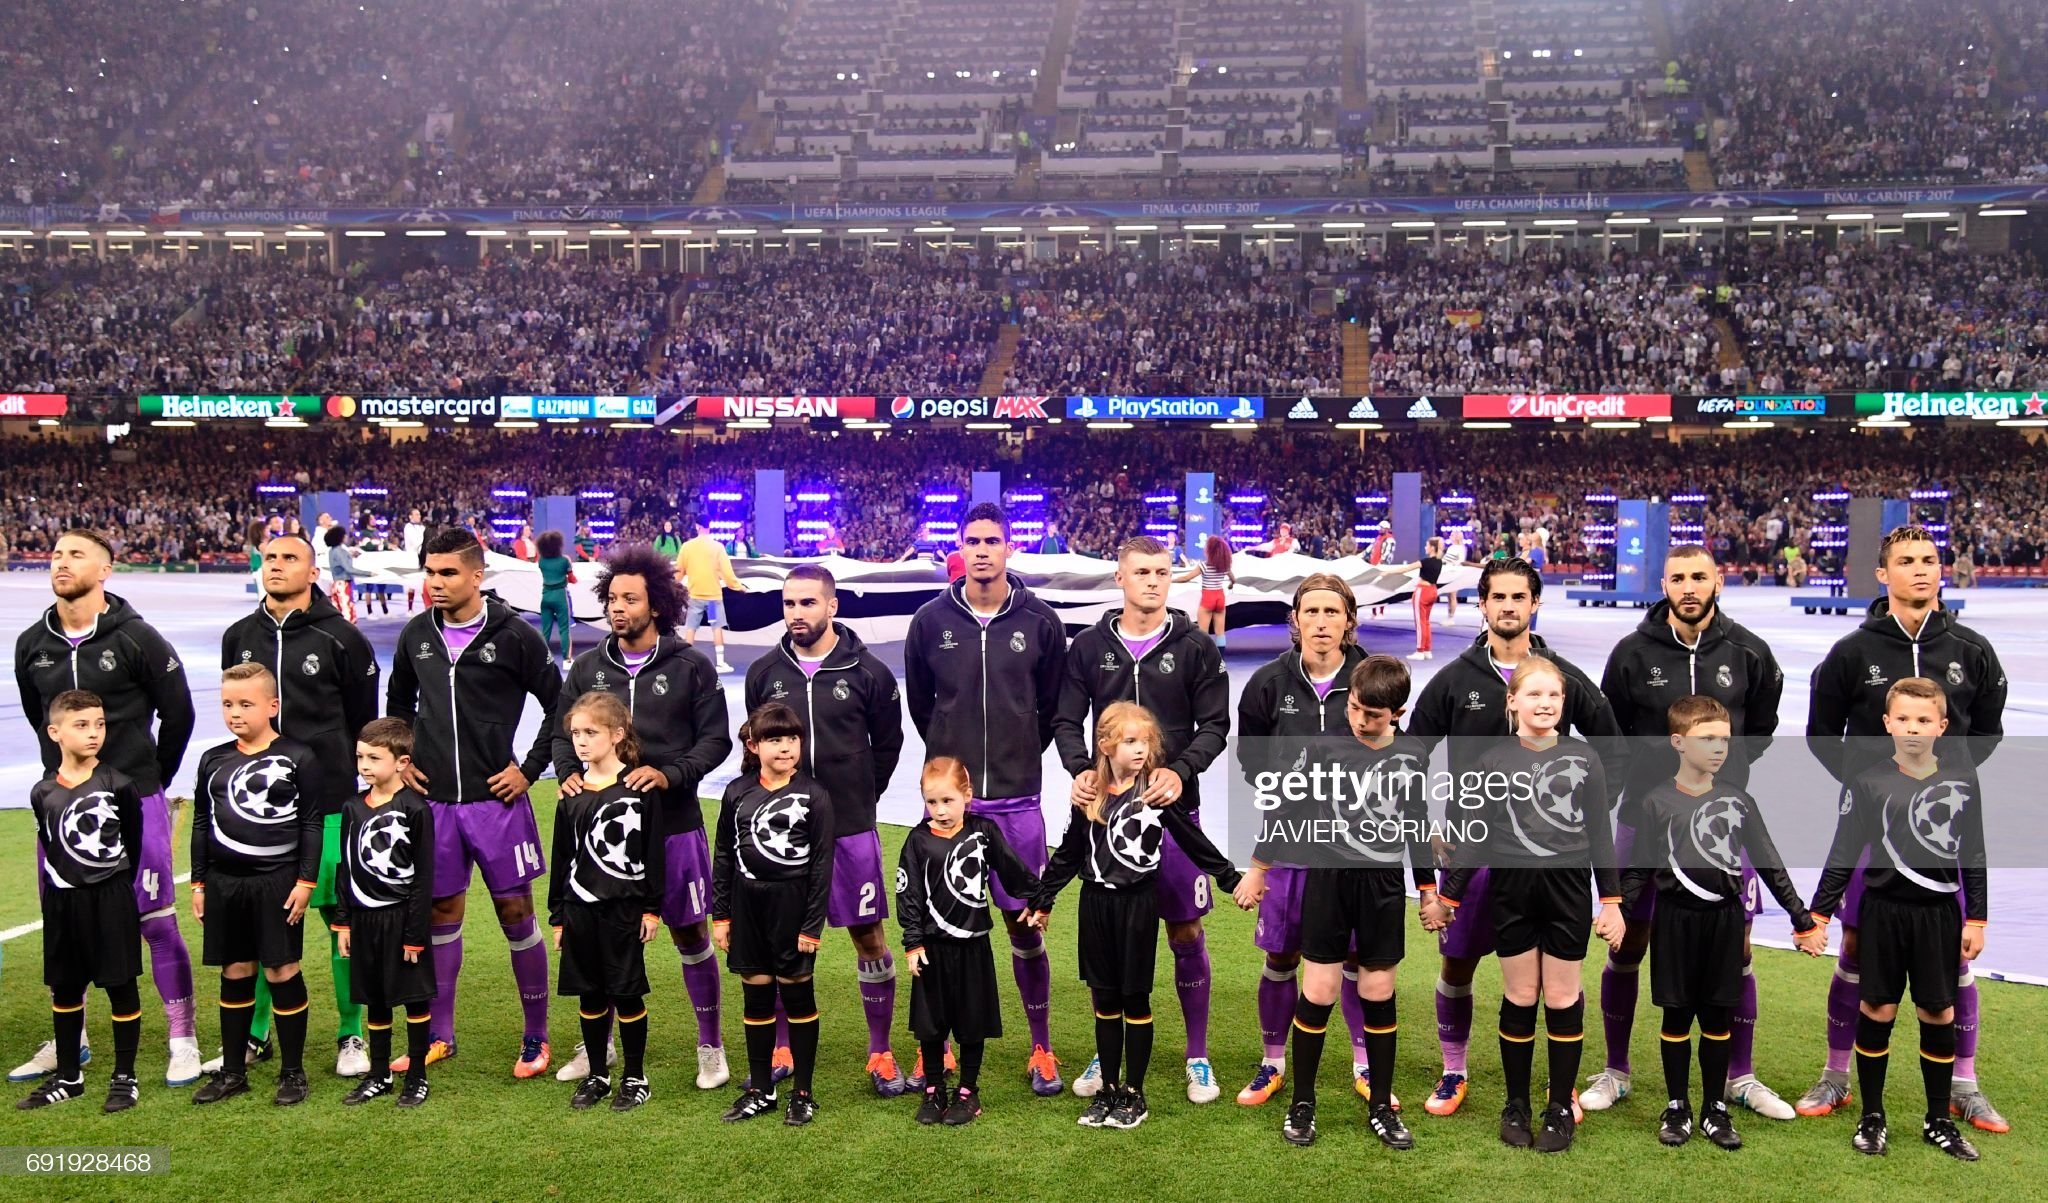 Hilo del Real Madrid - Página 3 Real-madrid-players-real-madrids-spanish-defender-sergio-ramos-real-picture-id691928468?s=2048x2048